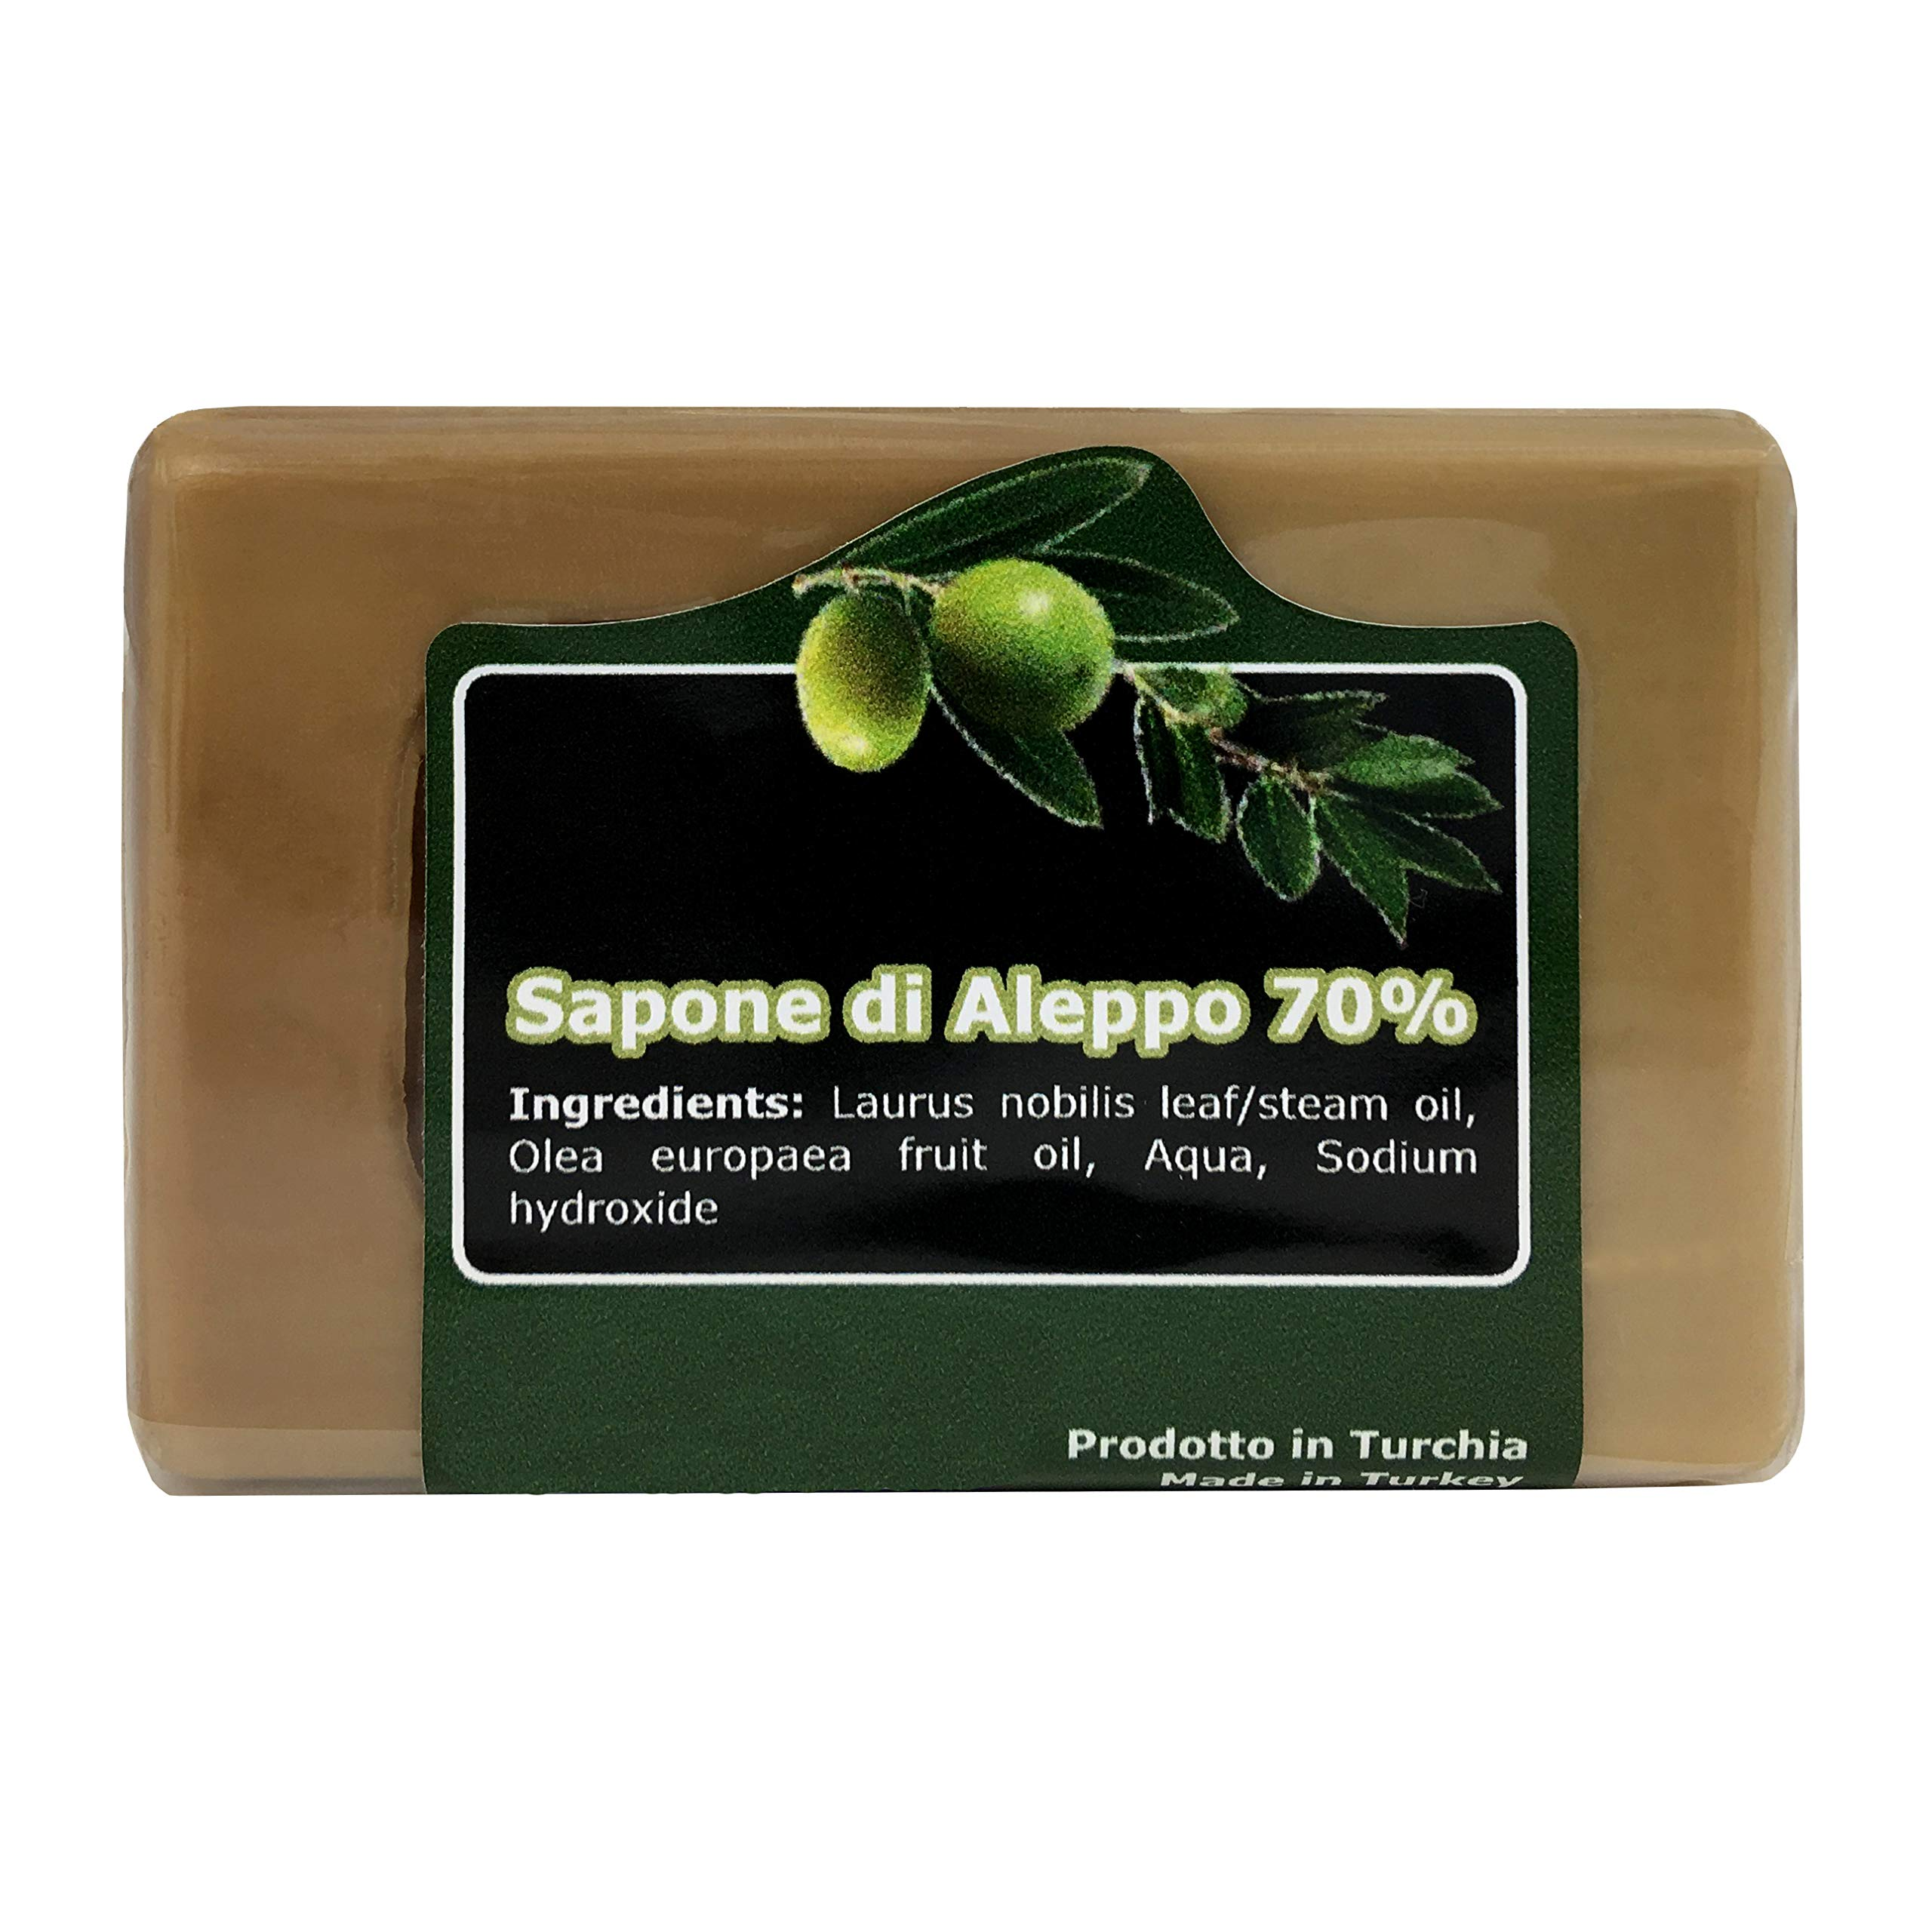 Natural Aleppo Soap Bar - with Olive Oil and 70% of Laurel Oil – Original Recipe - Handmade, Traditional and Organic Soap - Suitable for Sensitive Skins - Ideal as Body Soap and Shampoo